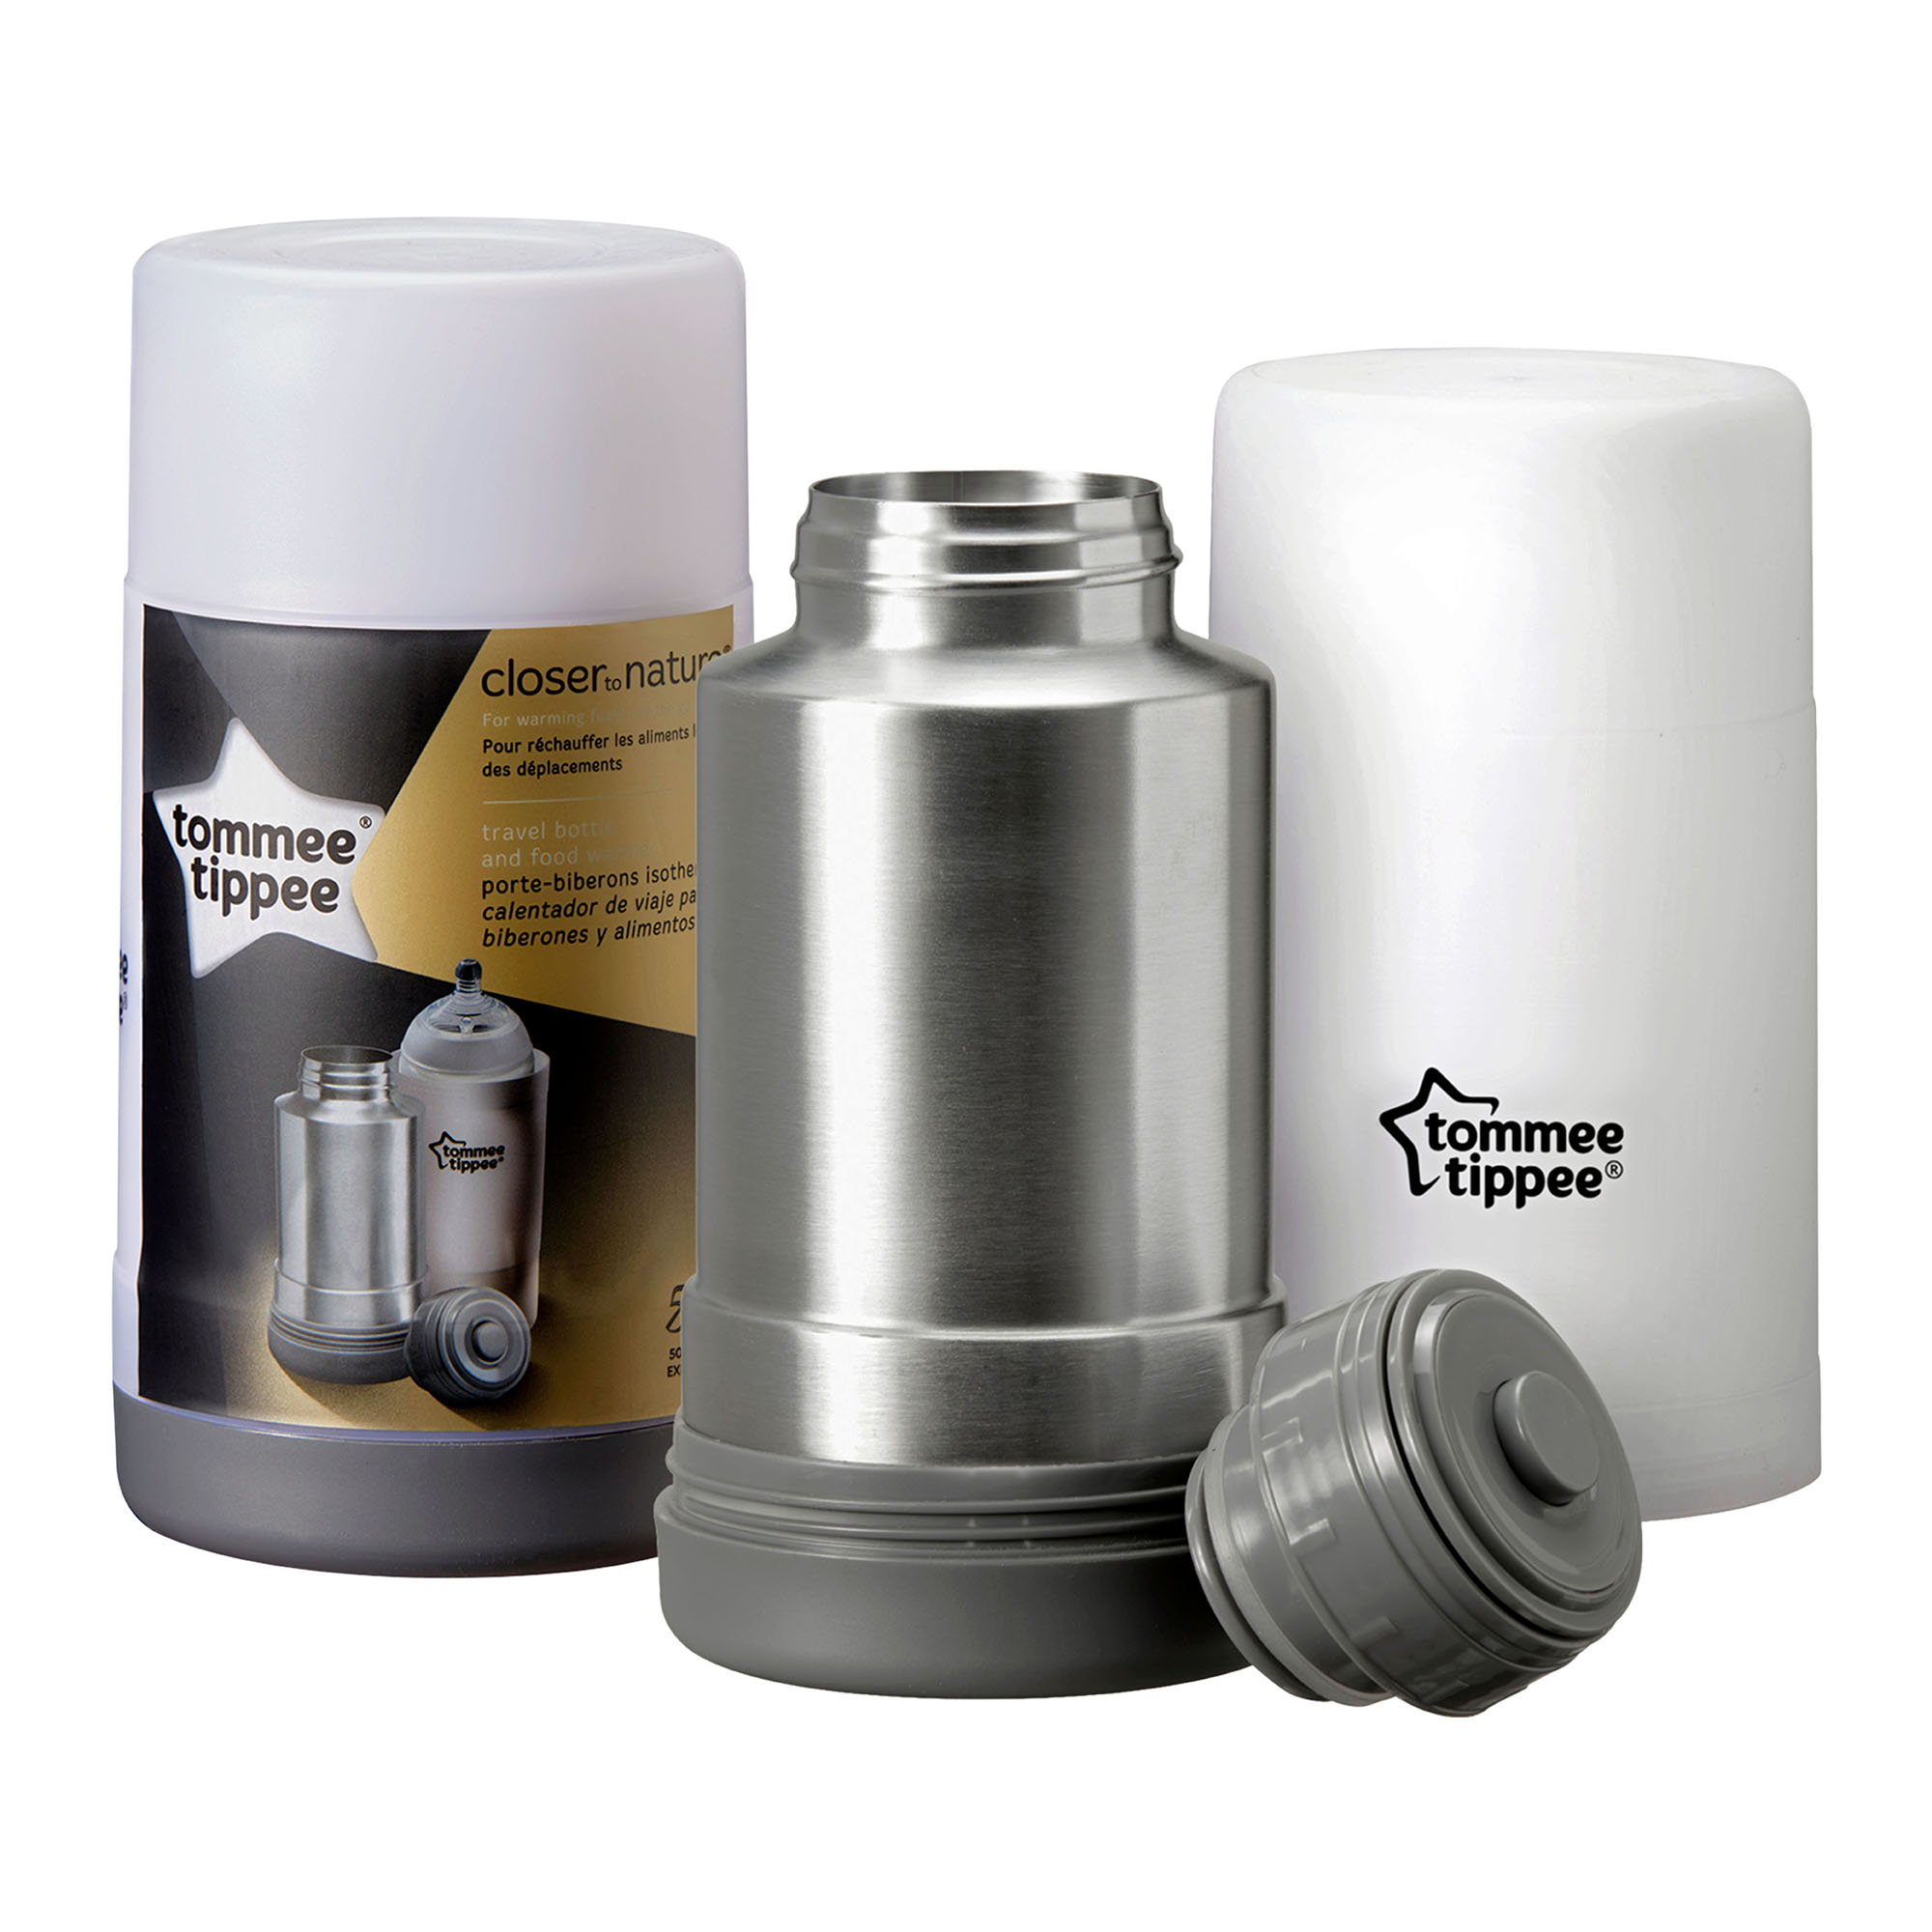 tommee tippee travel bottle warmer system